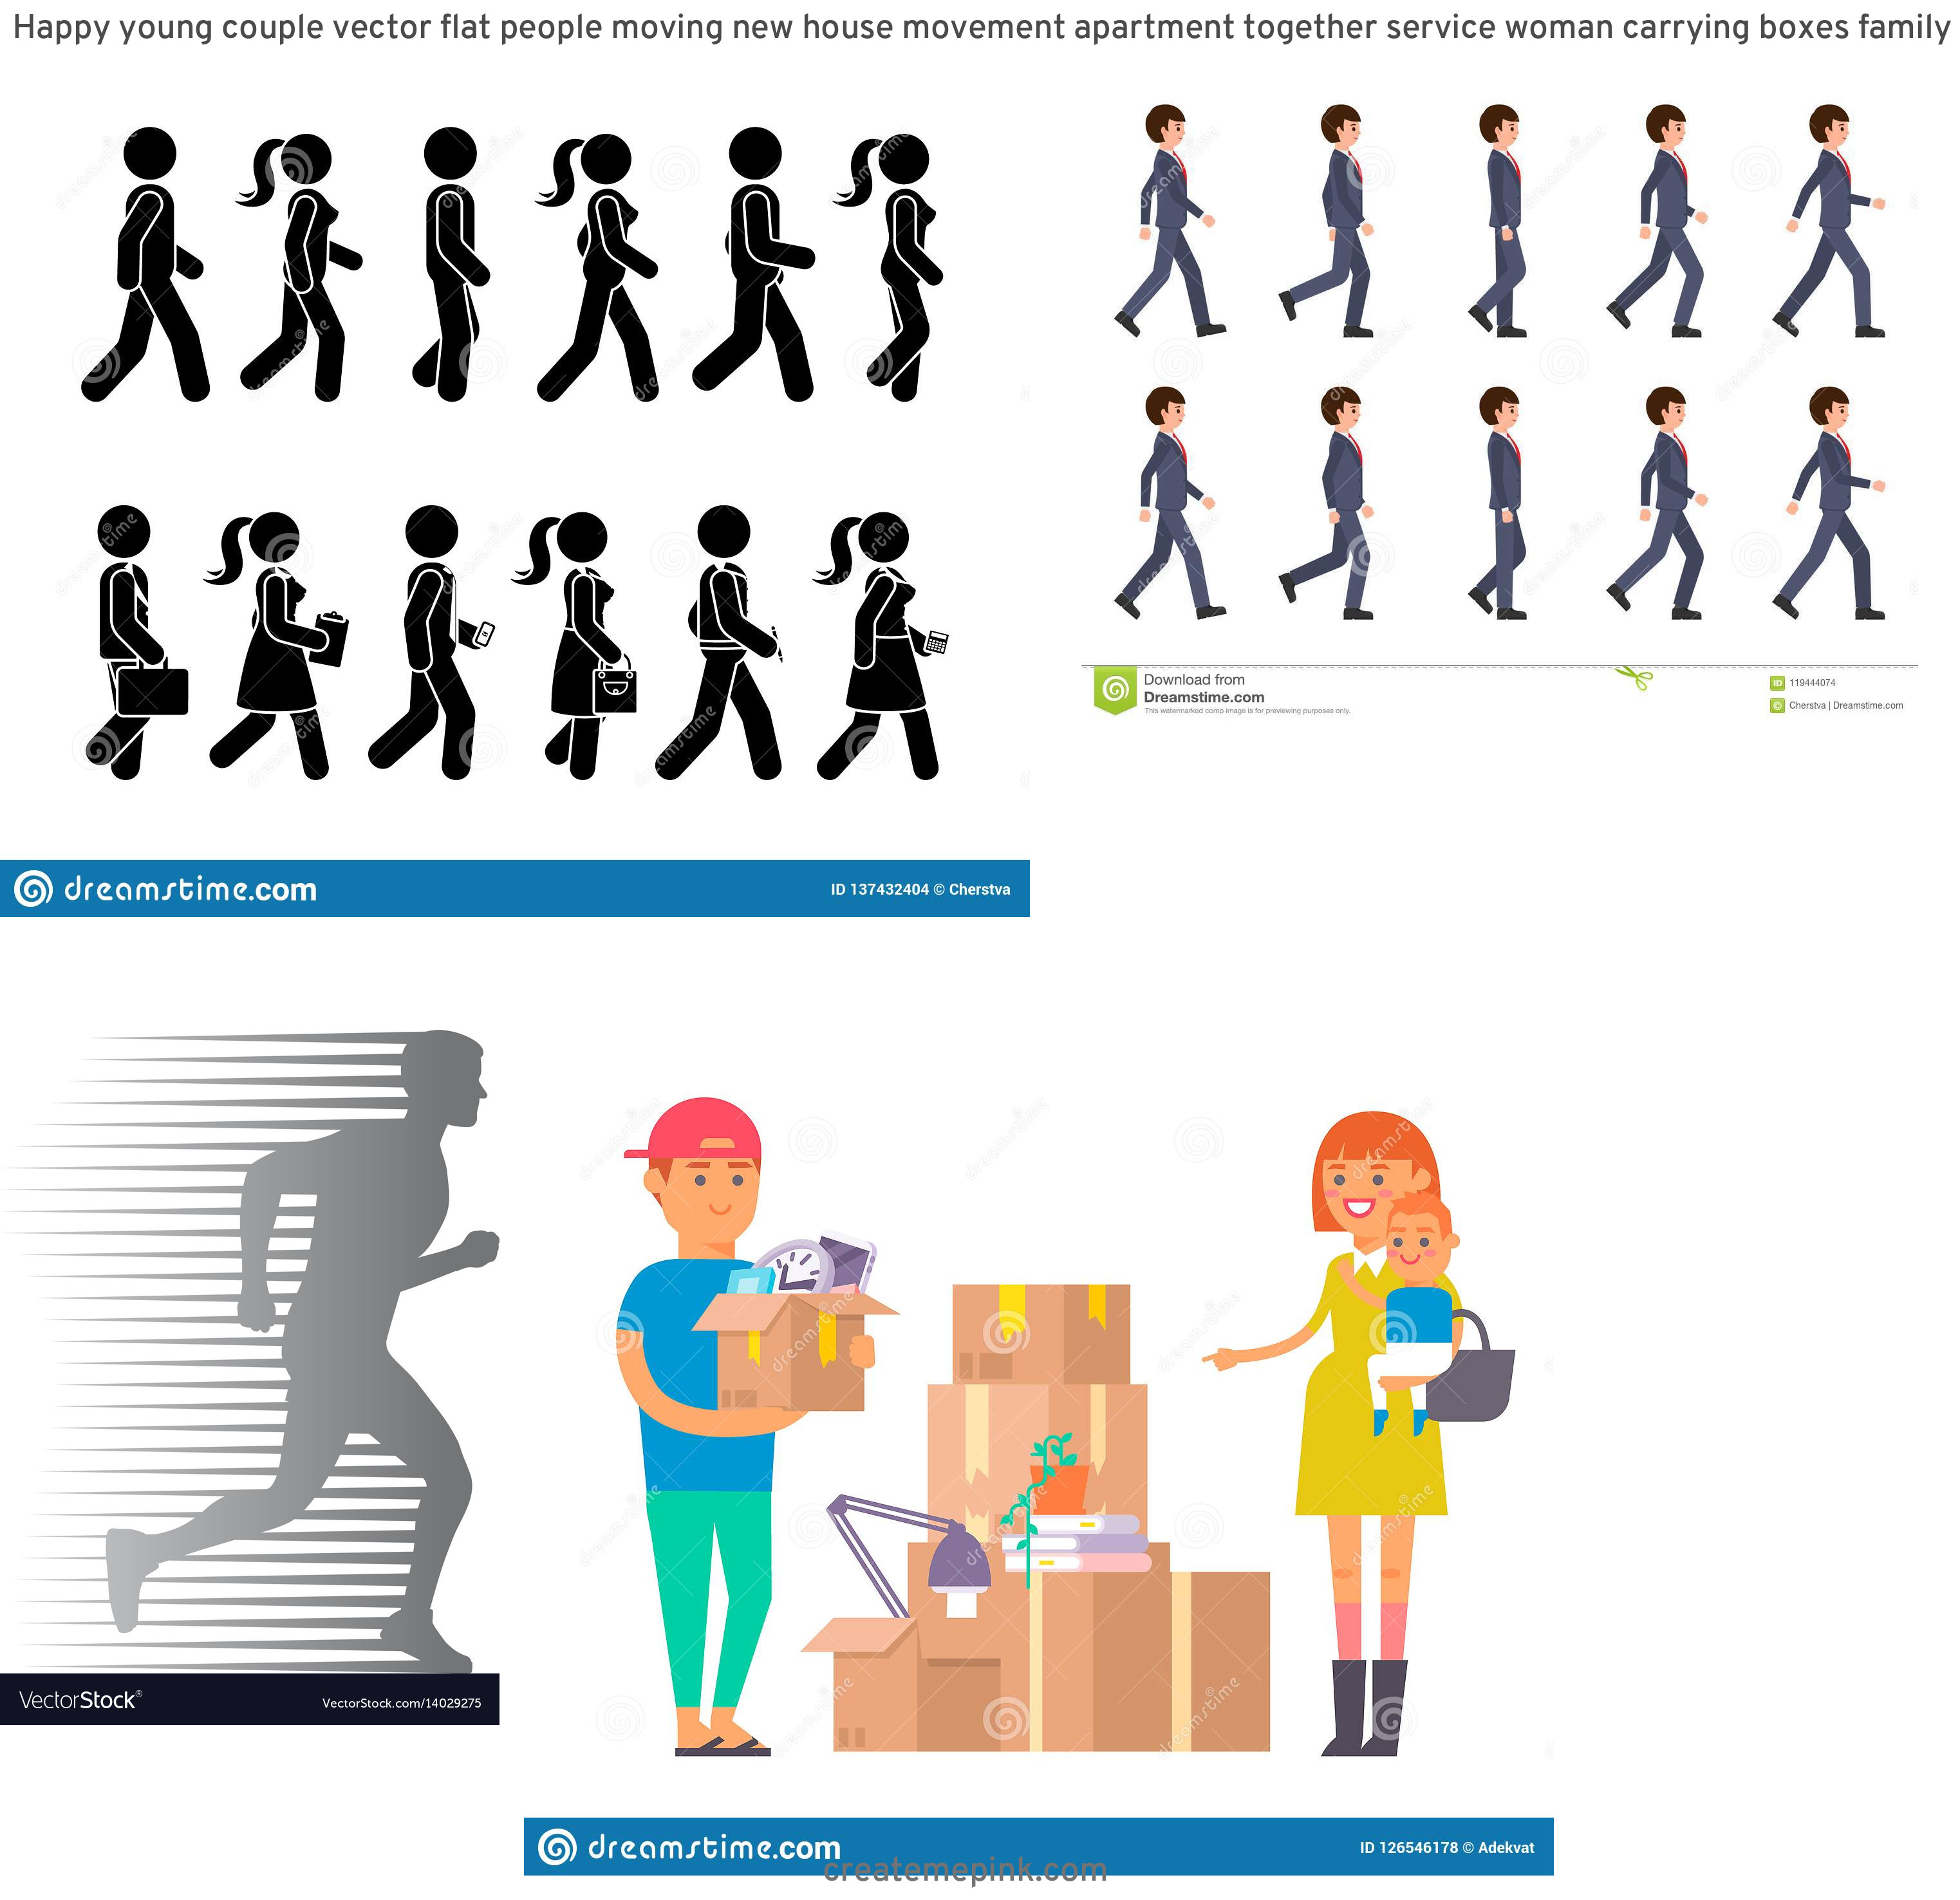 Vector Person Moving: Happy Young Couple Vector Flat People Moving New House Movement Apartment Together Service Woman Carrying Boxes Family Image